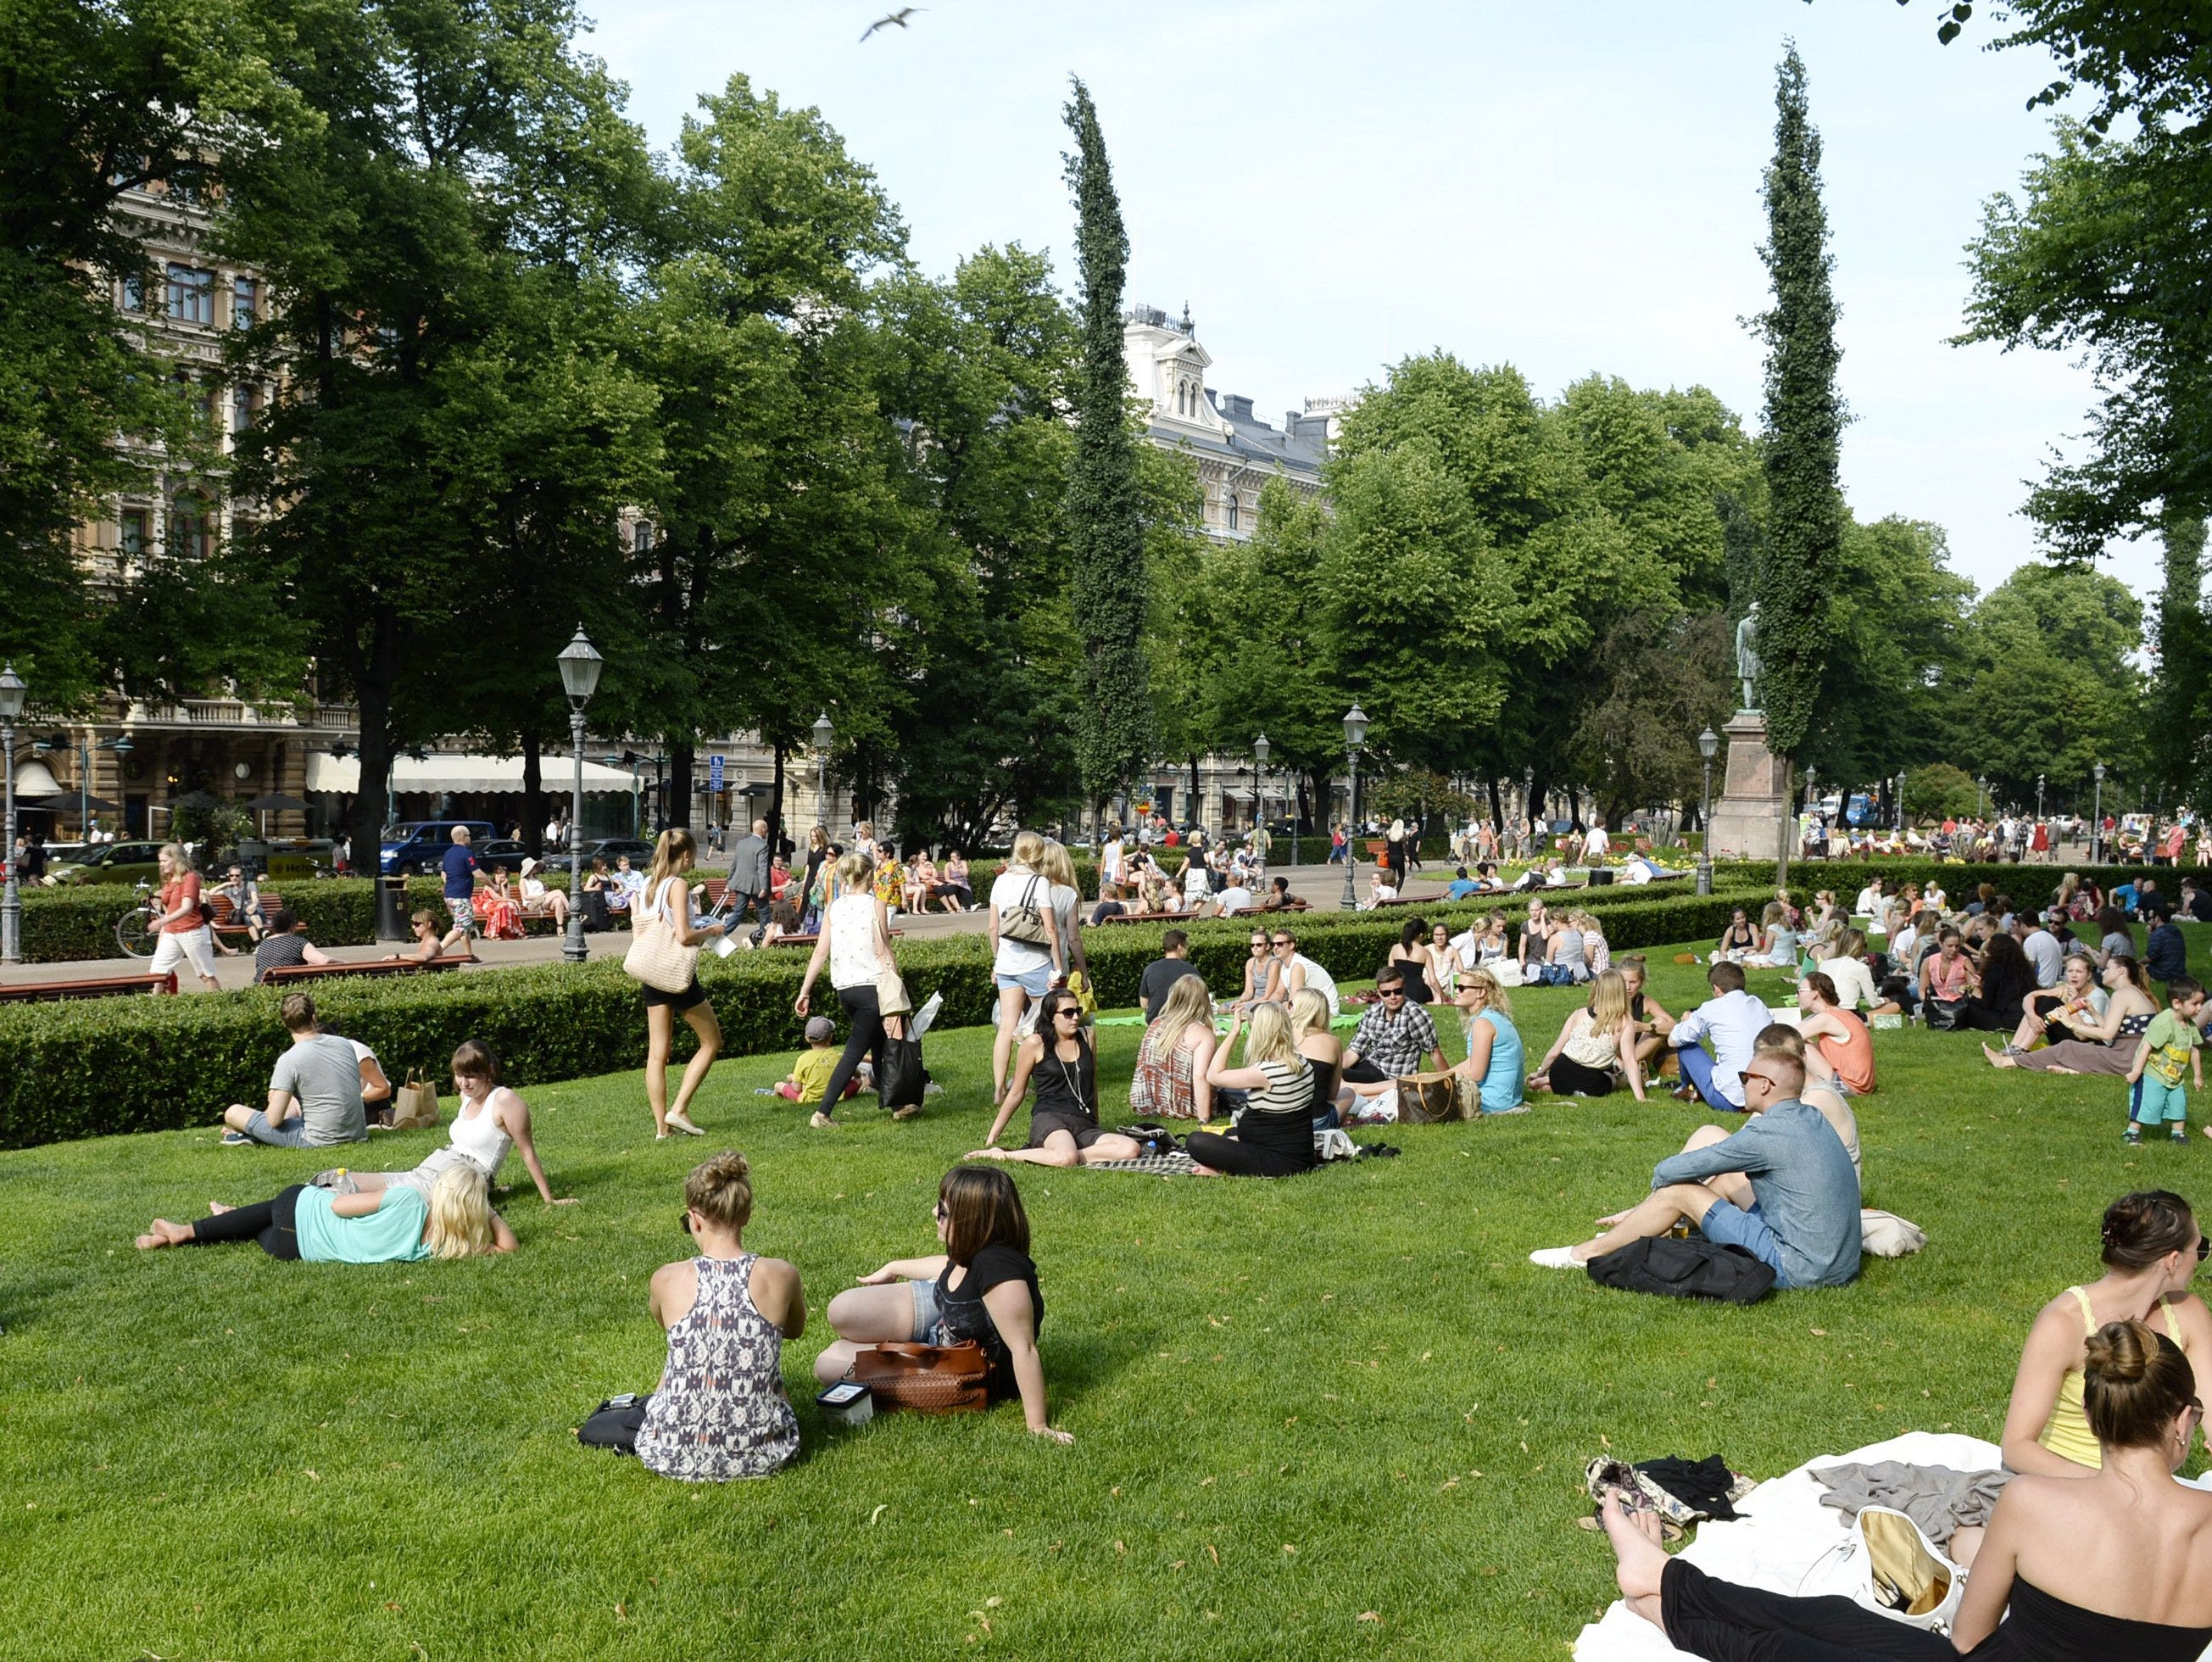 In this June 26, 2013 photo, people cool off on a hot summer day in Esplanade Park in Helsinki, Finland. In summer, glorious sun-filled days draw picnickers to every available last patch of grass. (AP Photo/Lehtikuva, Martti Kainulainen) FINLAND OUT ORG XMIT: HEL102